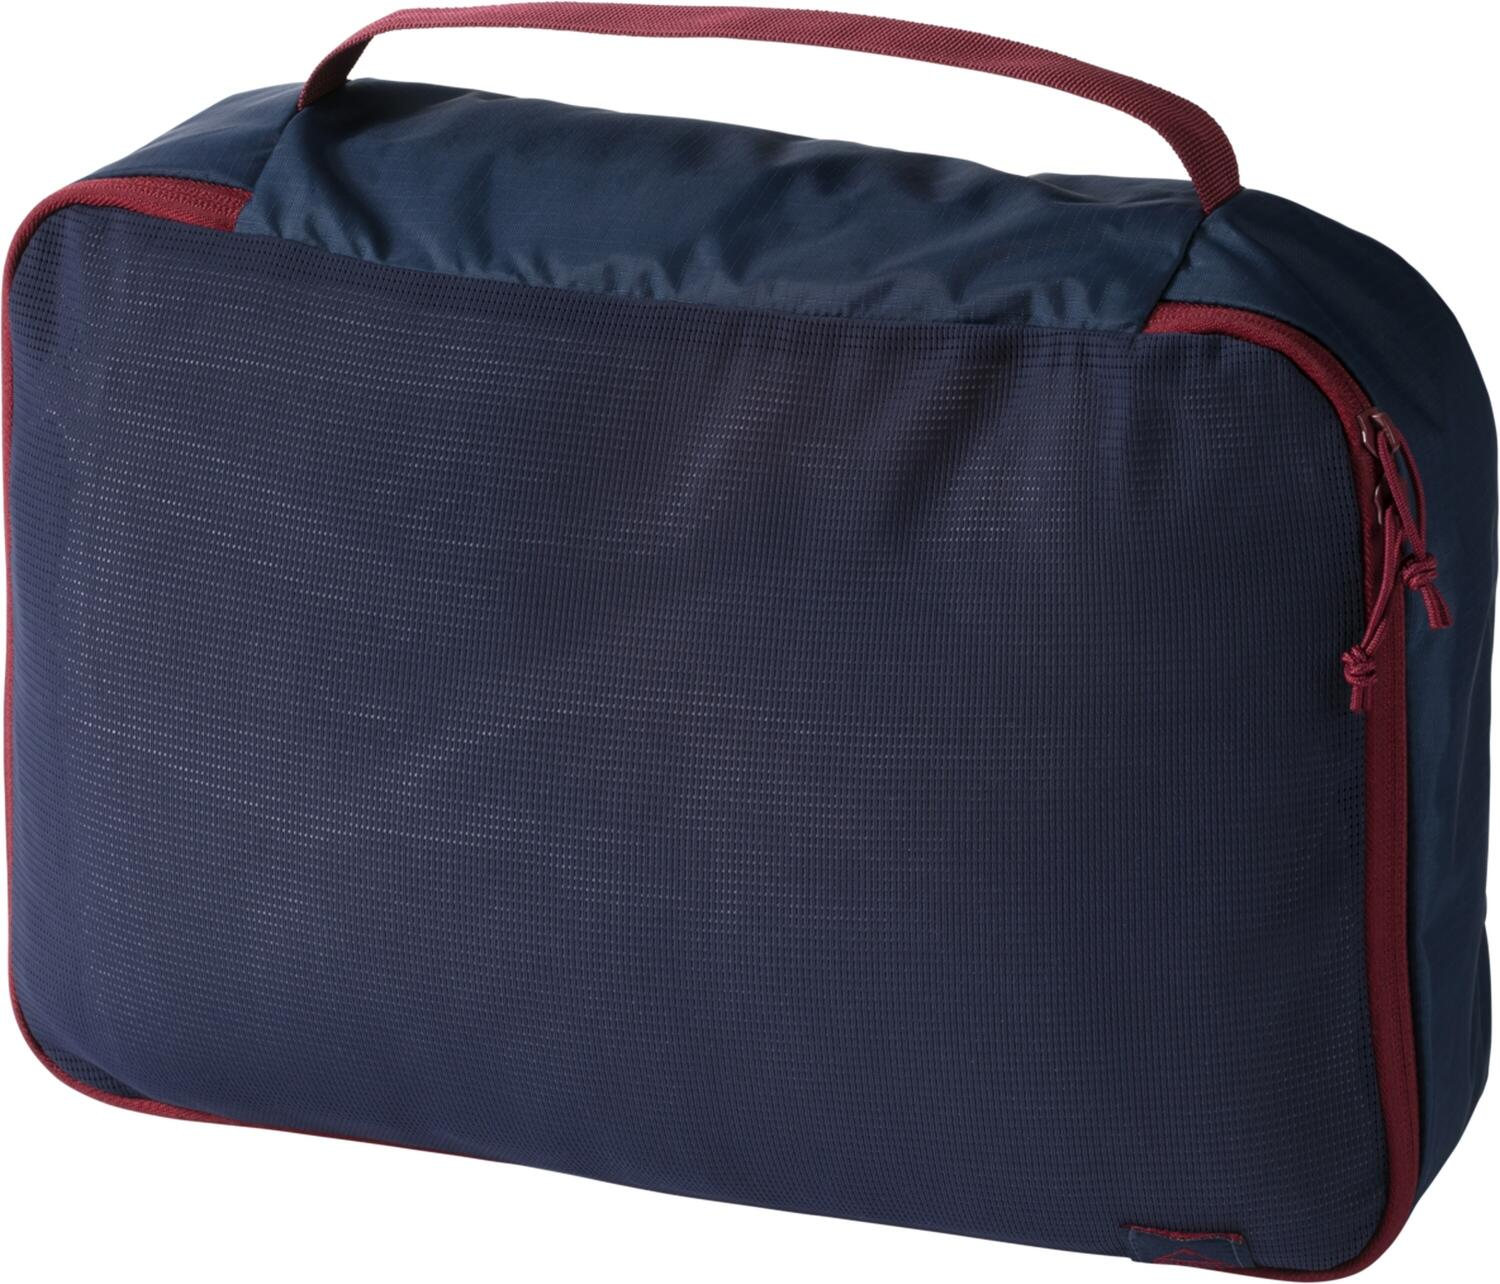 mckinley-cube-l-packbeutel-farbe-900-navy-rot-